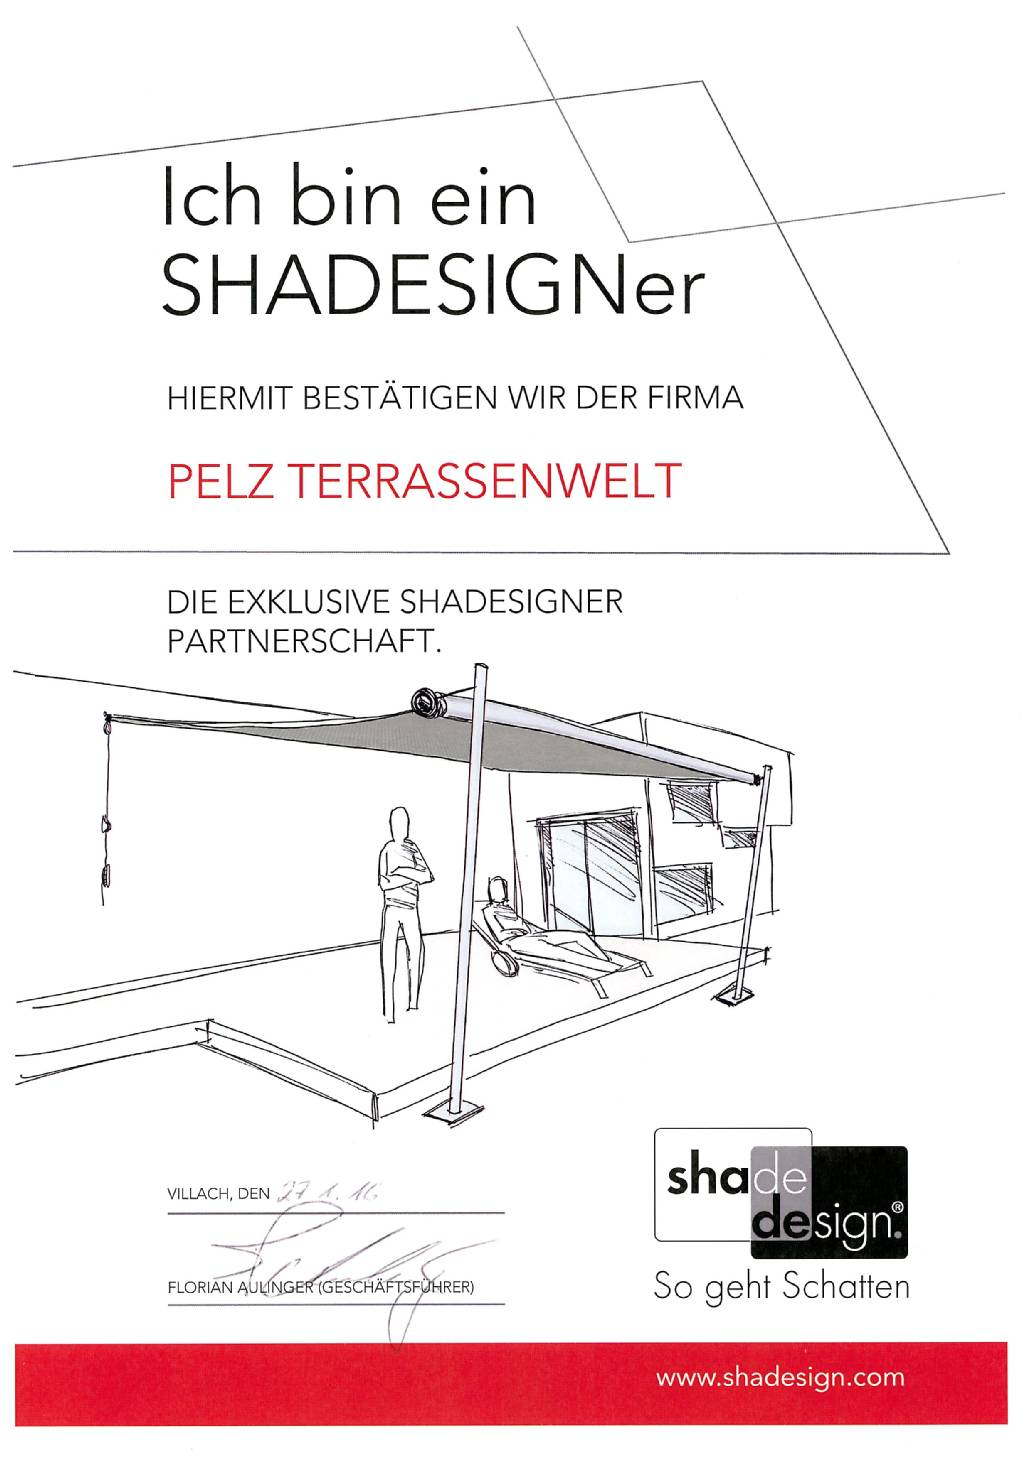 Exklusive SHADESIGNer Partnerschaft